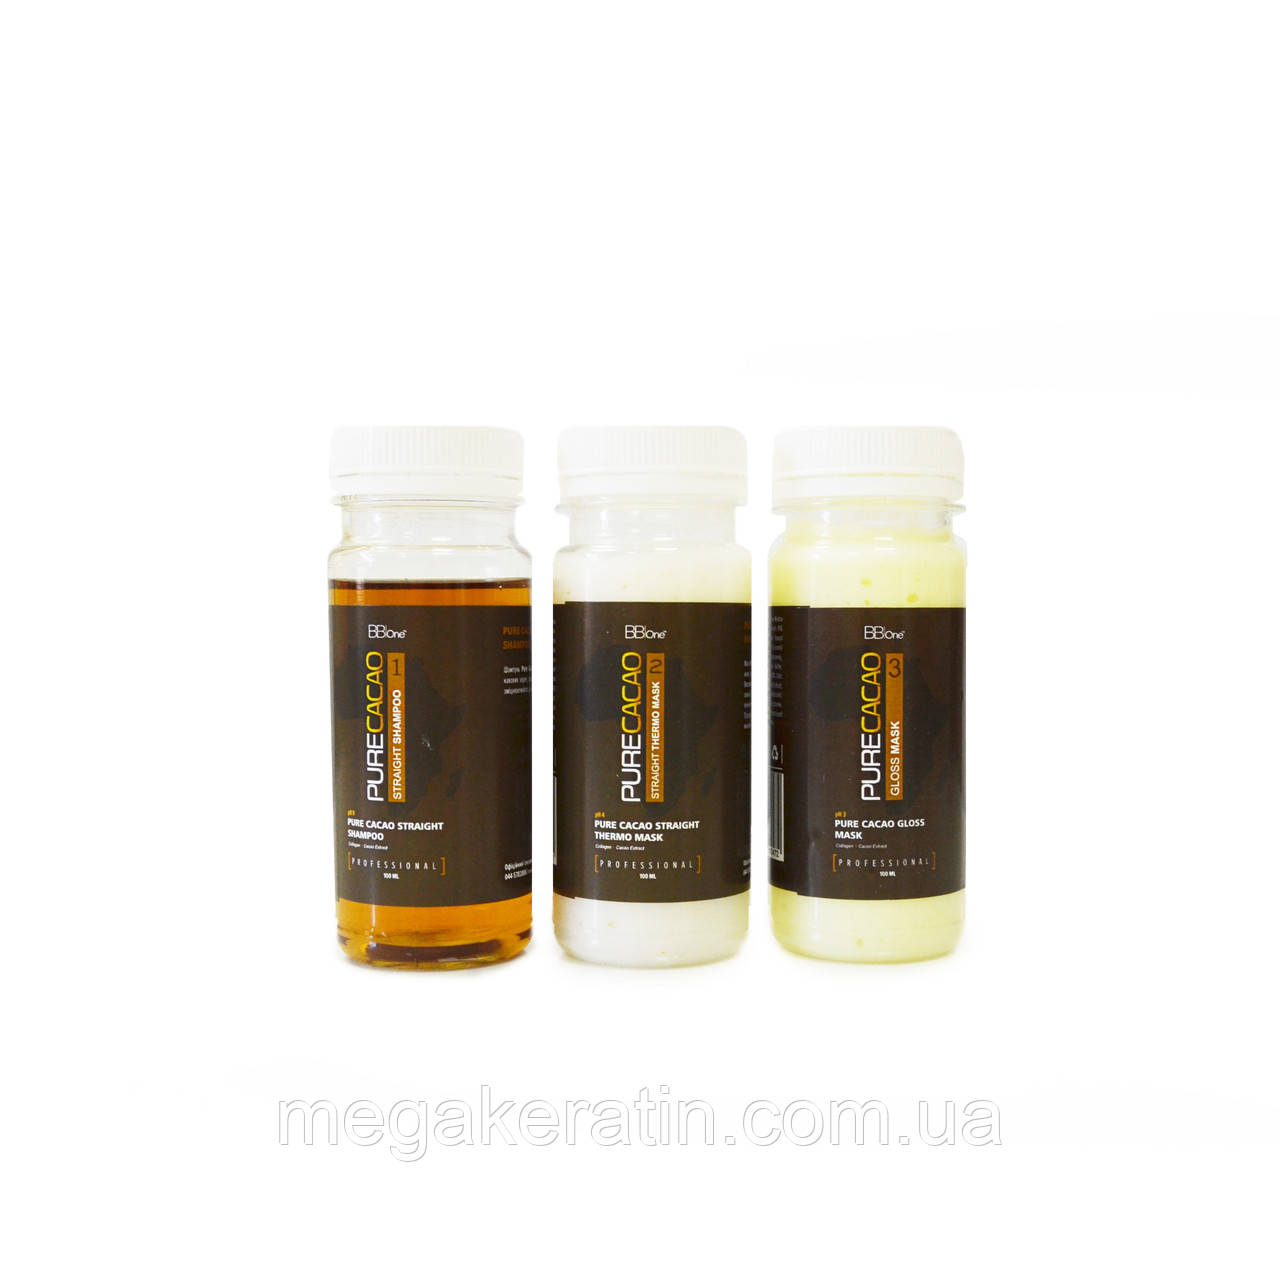 BB ONE Pure Cacao Line набор 3*100 мл